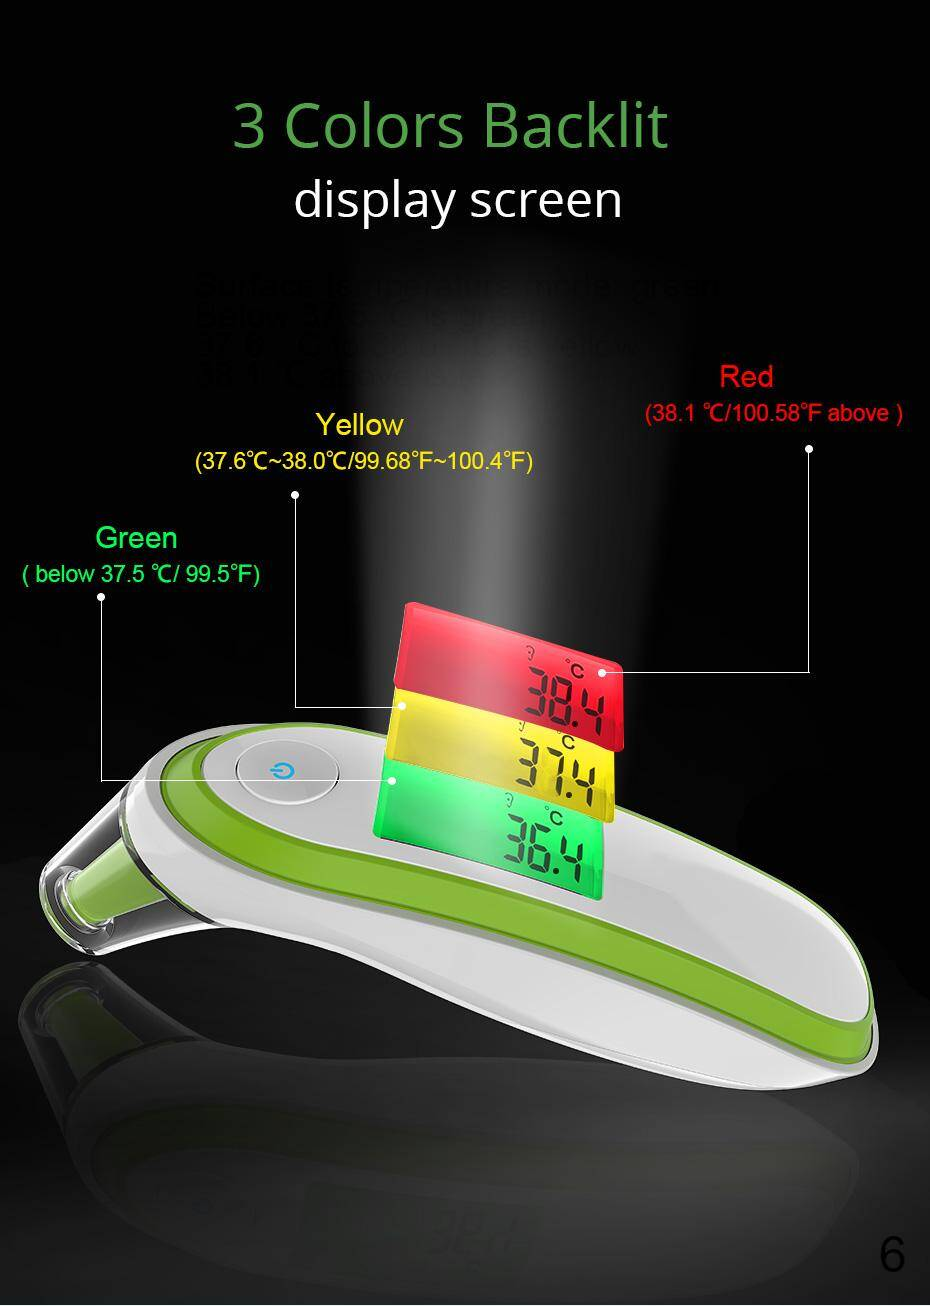 3 colors backlit display screen of the infrared thermometer